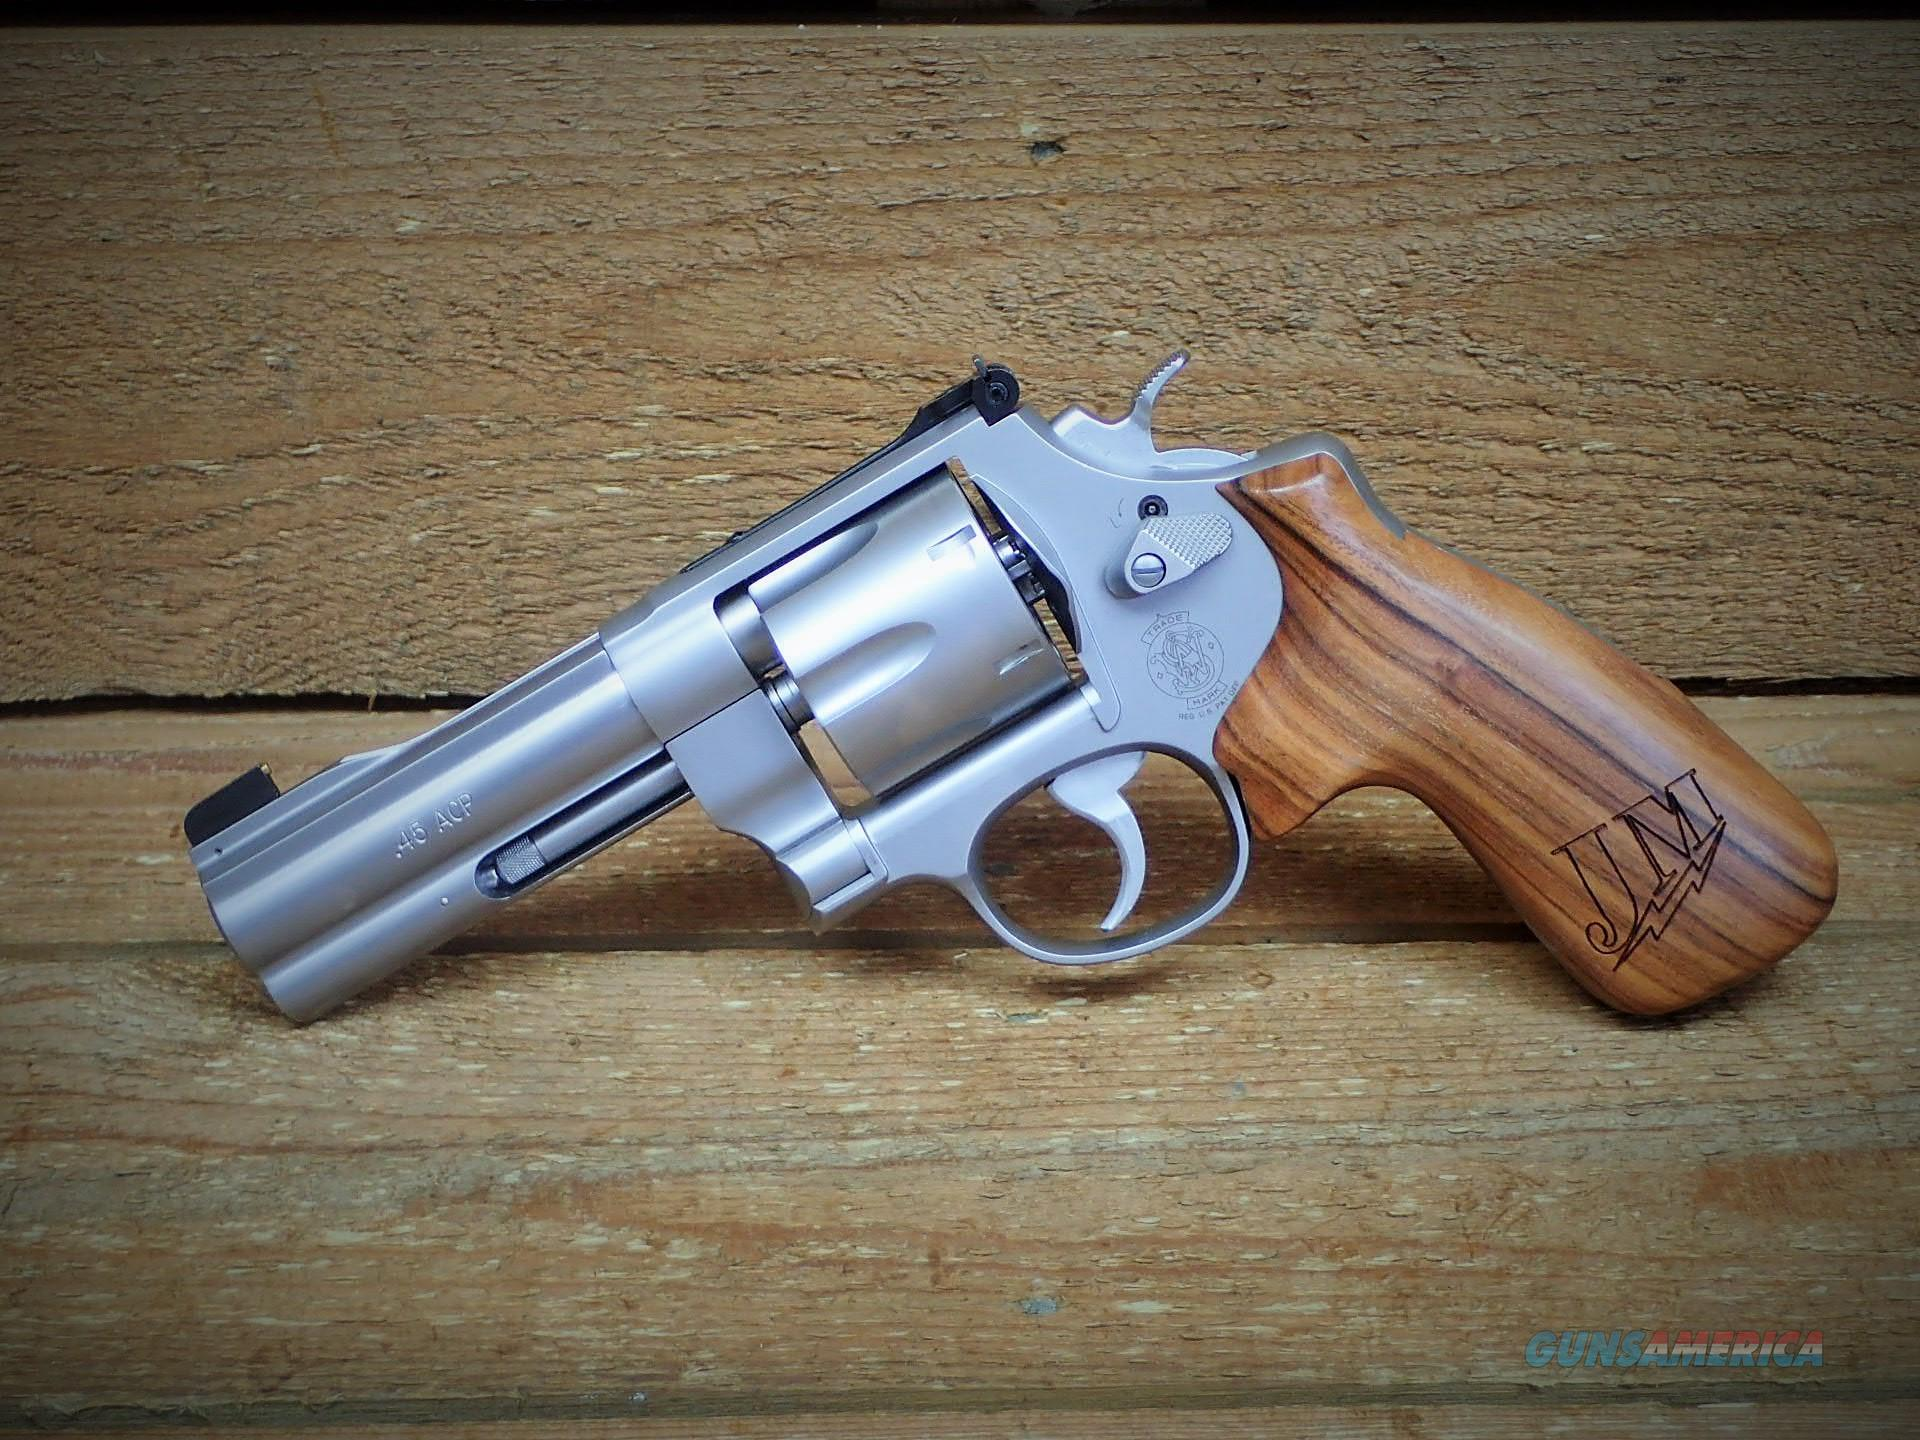 S&W 625 Jerry Miculek Champion 160936 /EASY PAY $55 Monthly  Guns > Pistols > Smith & Wesson Revolvers > Full Frame Revolver